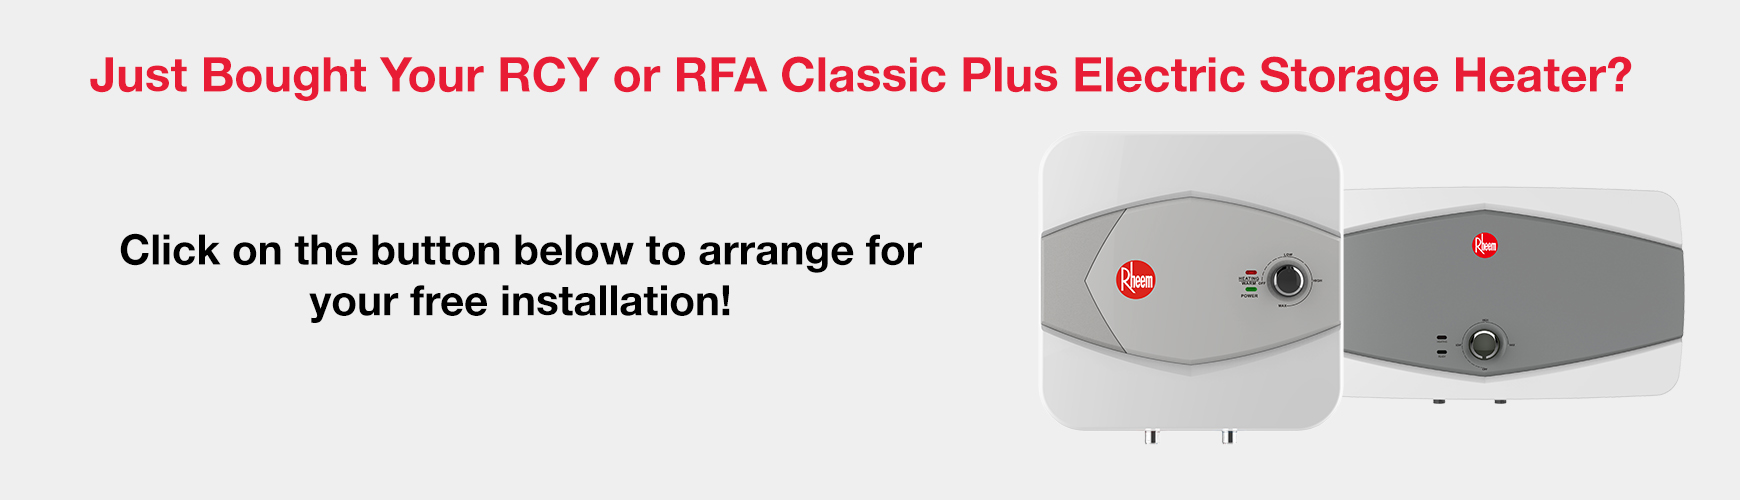 RCY RFA Free Installation Promo Schedule